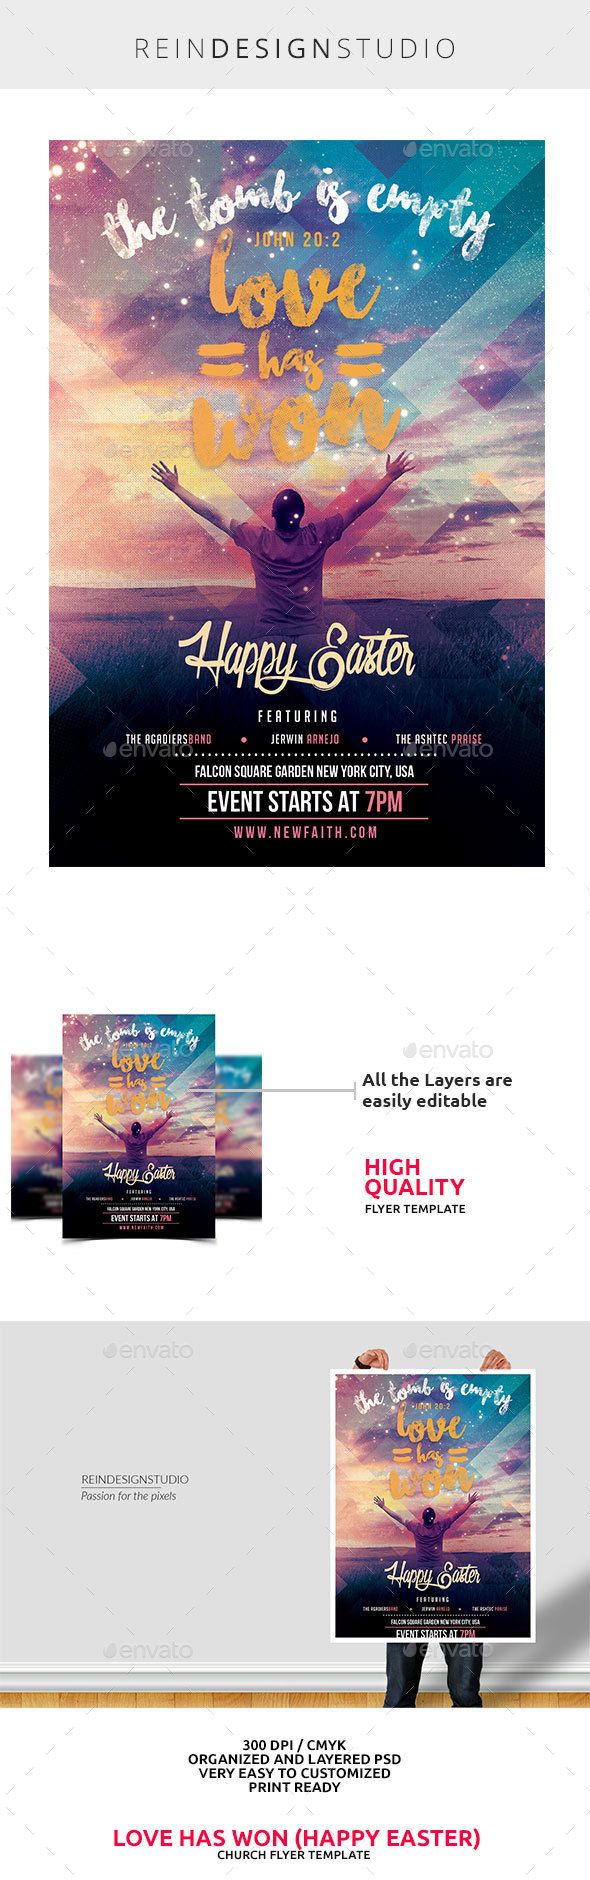 Love Has Won Happy Easter Church Flyer — Photoshop PSD #invitation #word • Available here → https://graphicriver.net/item/love-has-won-happy-easter-church-flyer/15019376?ref=pxcr